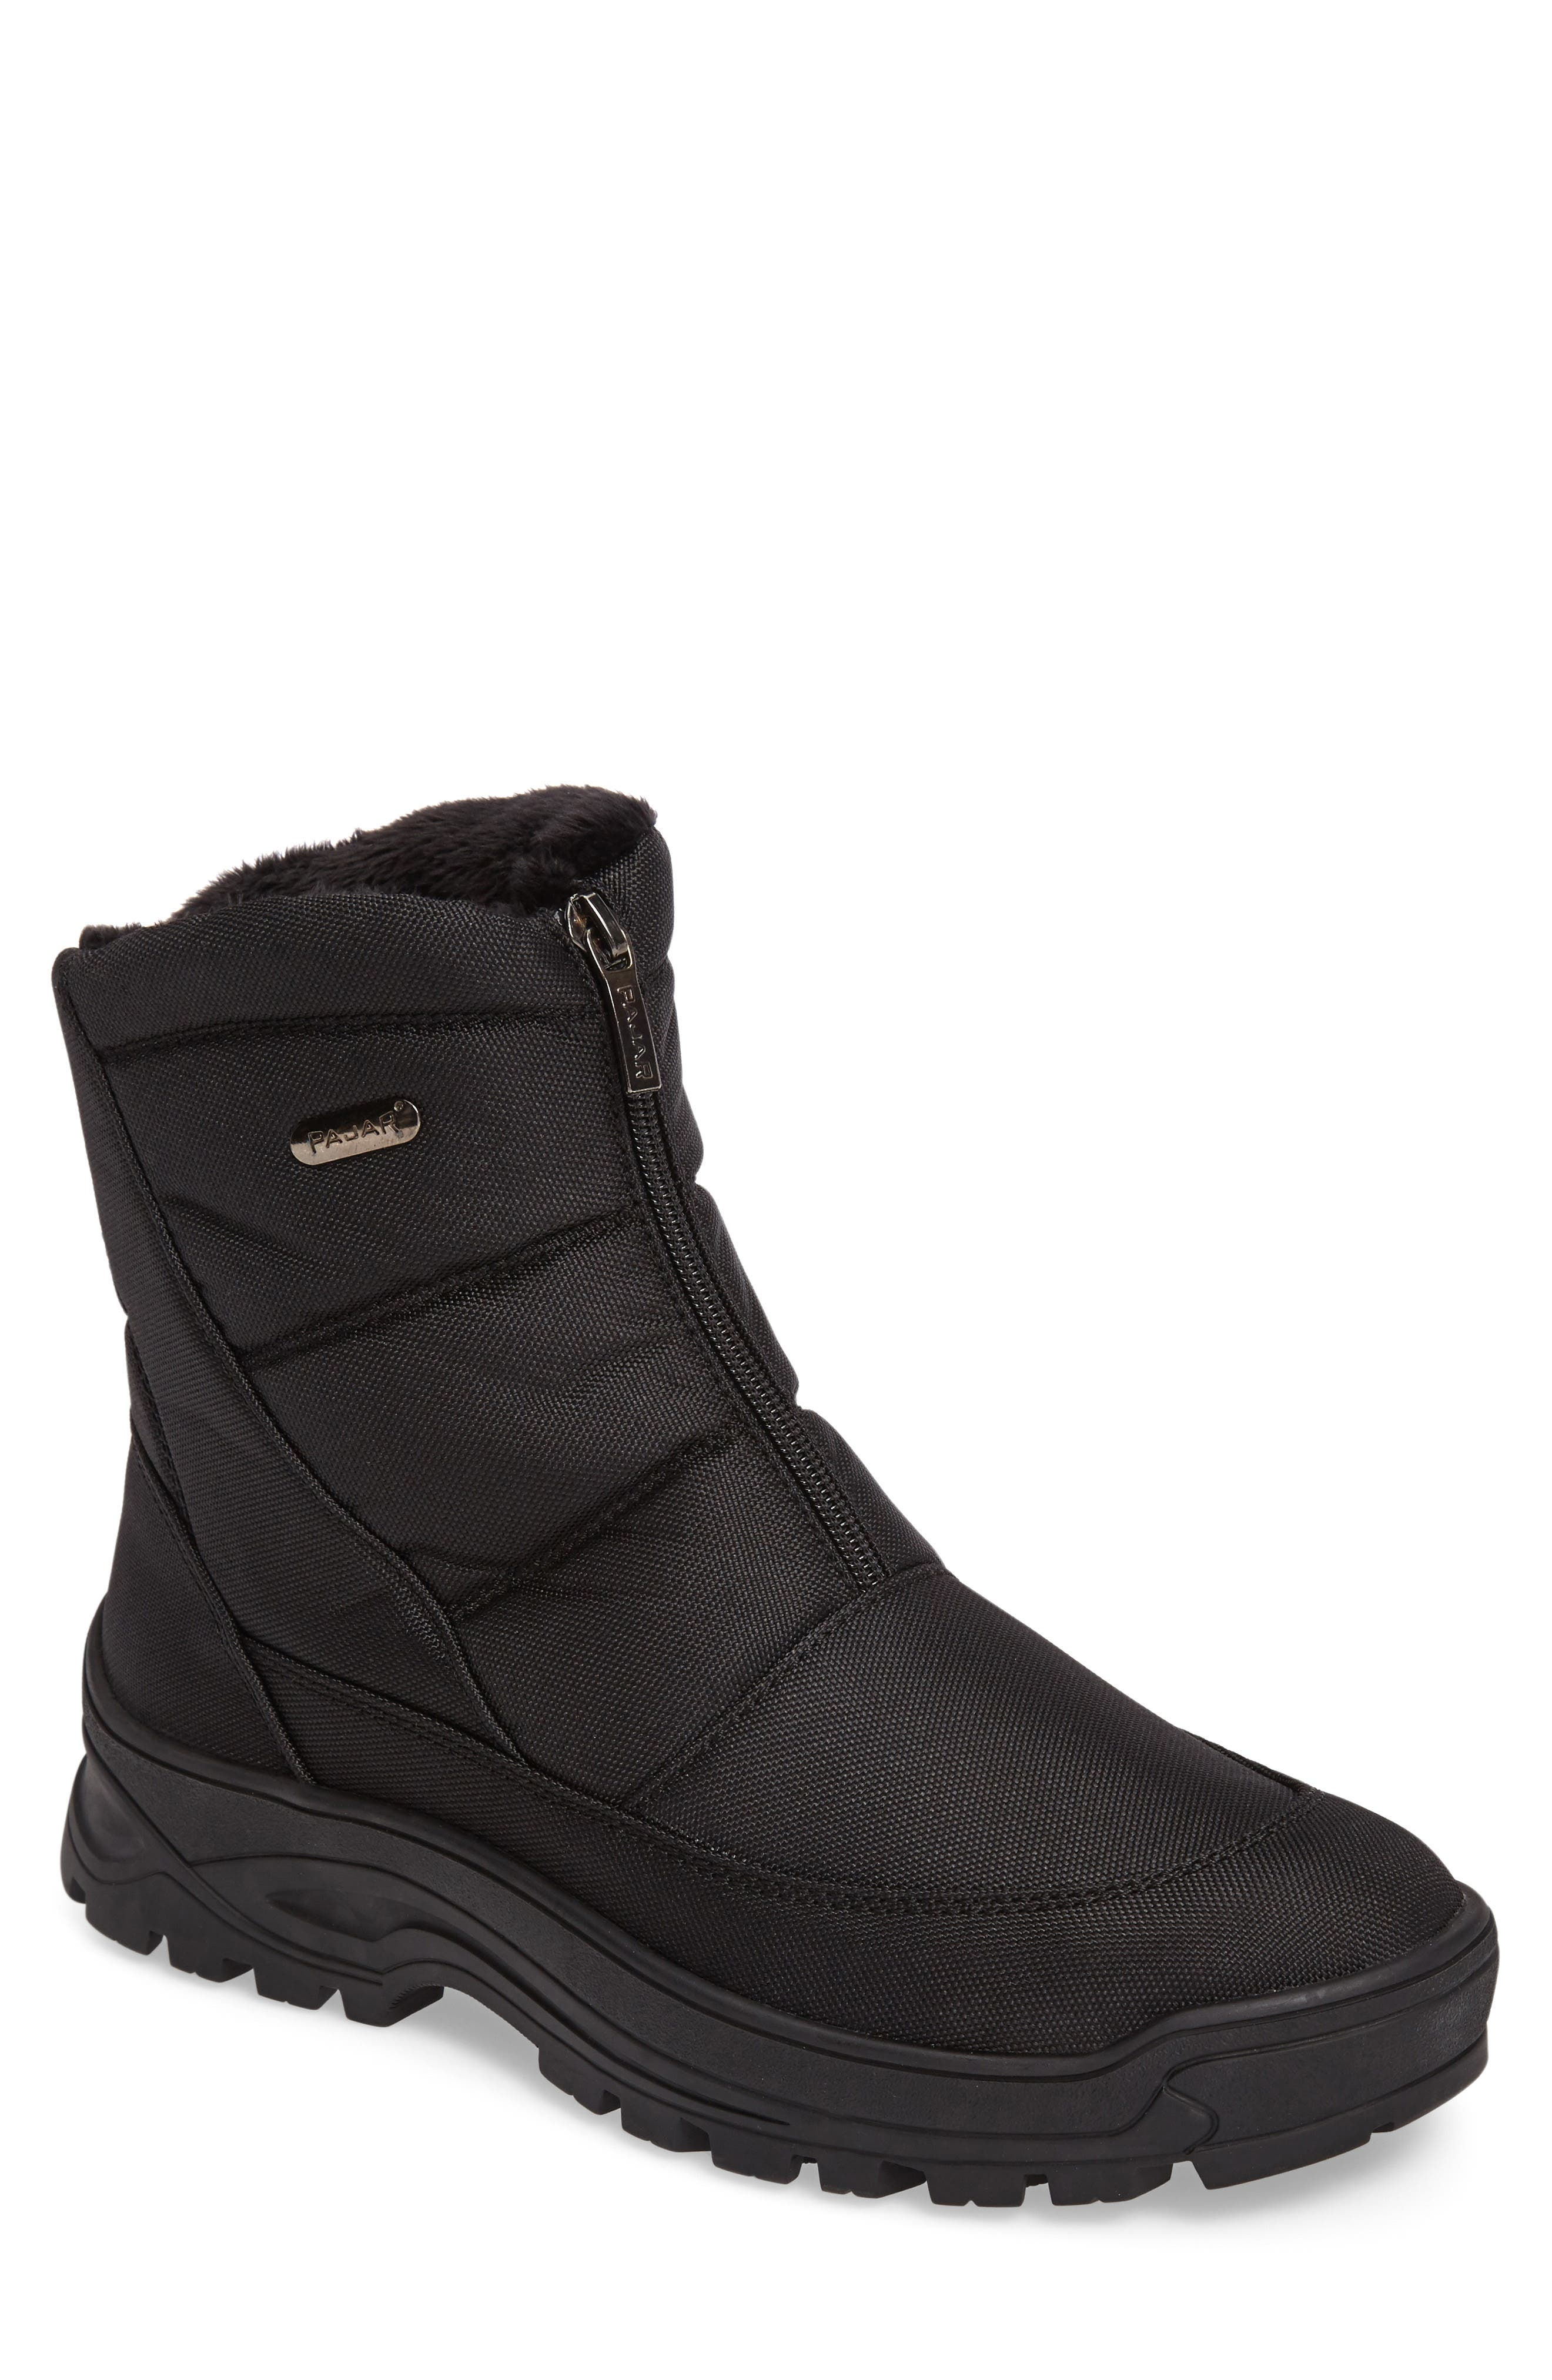 Icepack Boot with Faux Fur Lining,                         Main,                         color, 001